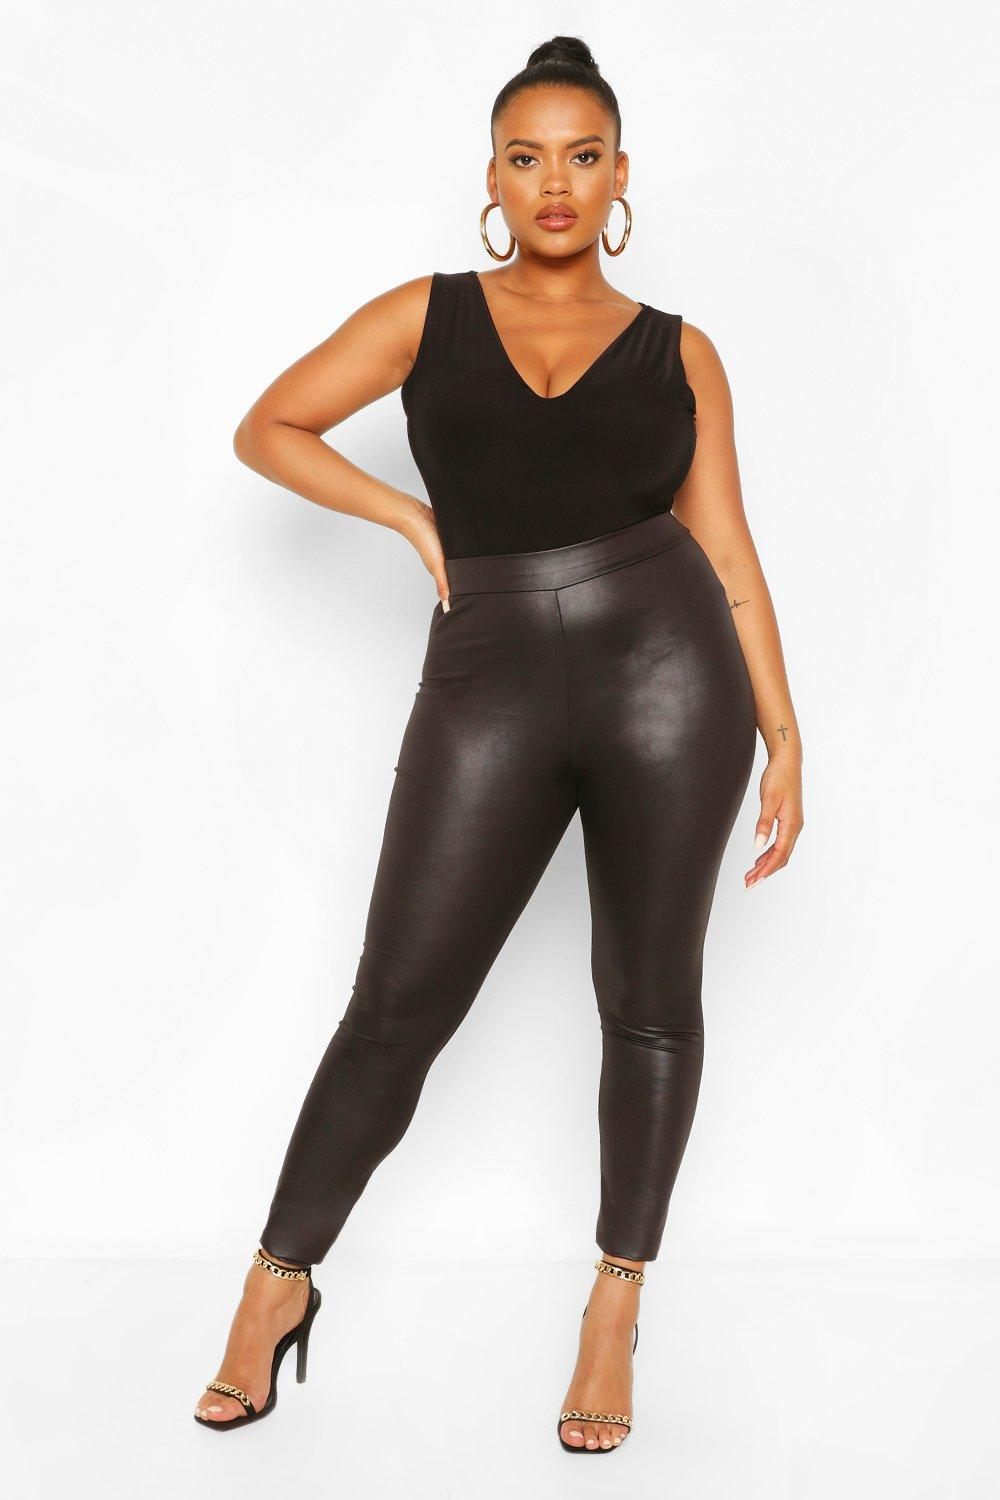 Apr 20, · Don't wear your leggings with the wrong shoes. Leggings look great with knee-high boots, sandals, flip-flops, or even low-cut boots. If you wear your leggings with heels or pumps, make sure that they match your shirt and that you don't look too trashy%(6).